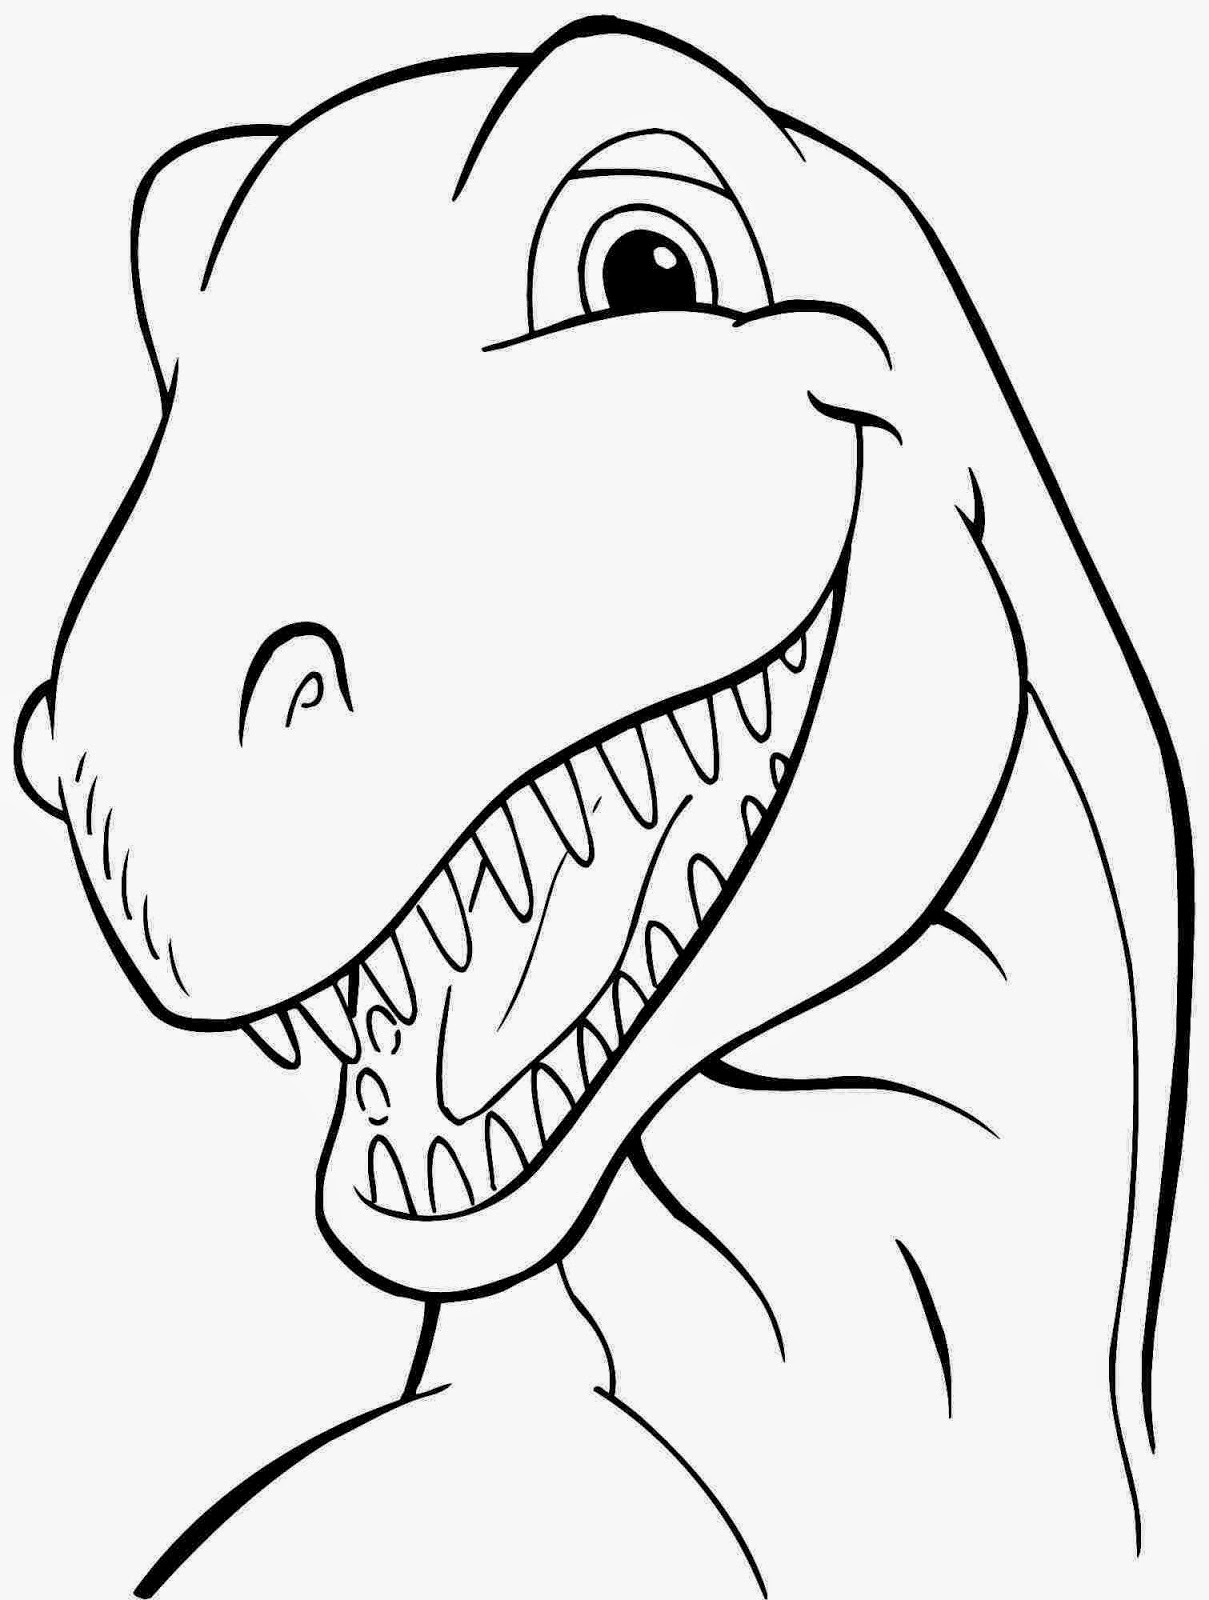 dinosaurs coloring pages printable dinosaurs coloring pages printable dinosaurs printable pages coloring